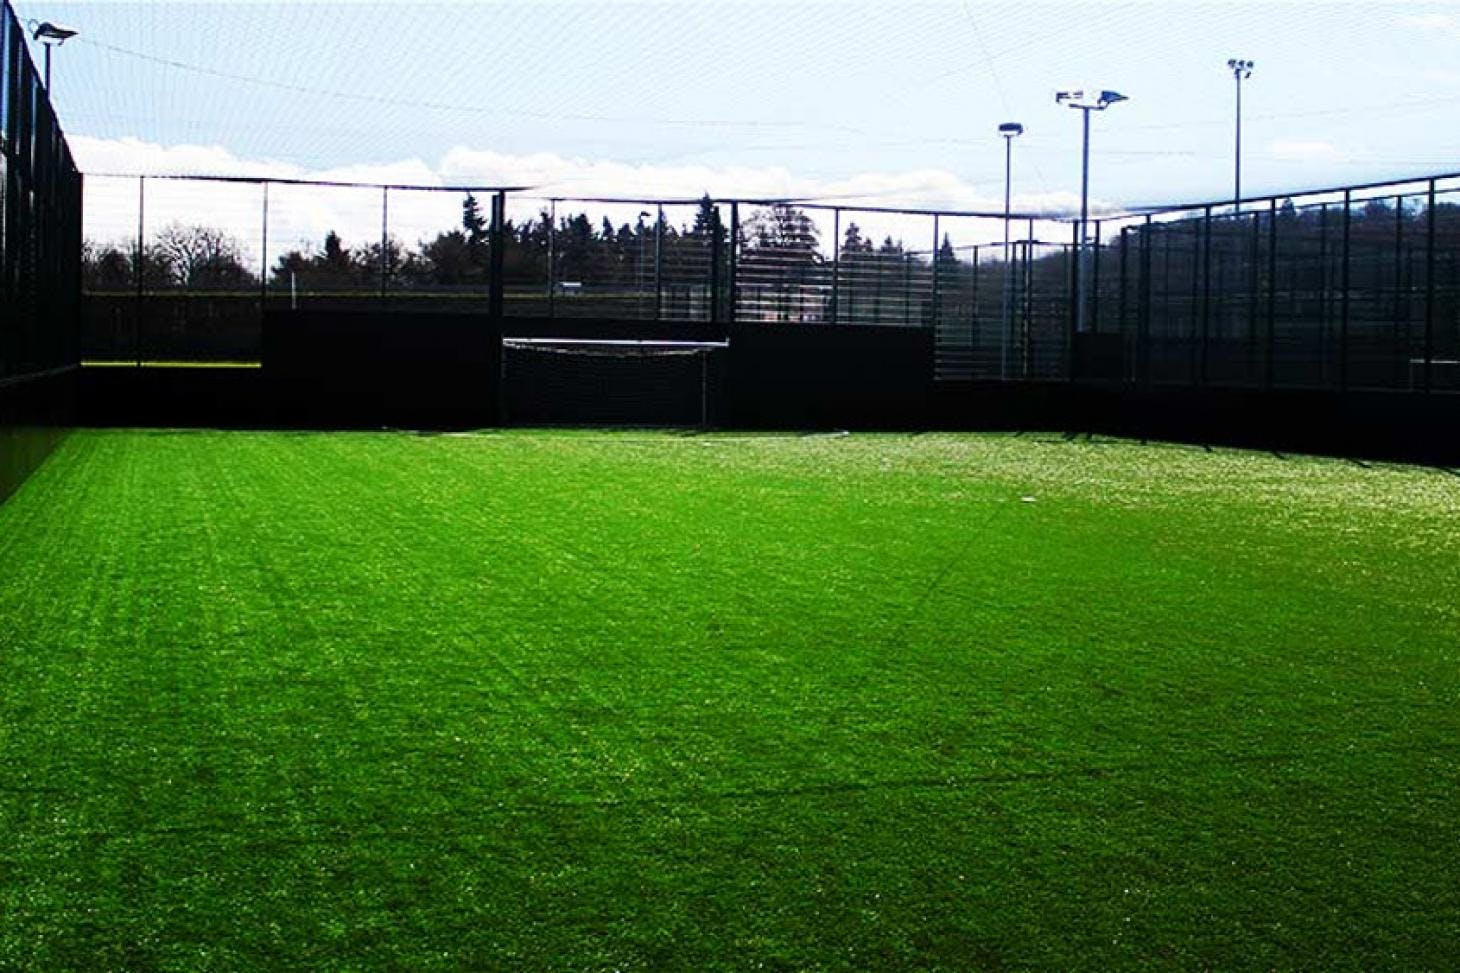 Venue 360 5 a side | 3G Astroturf football pitch